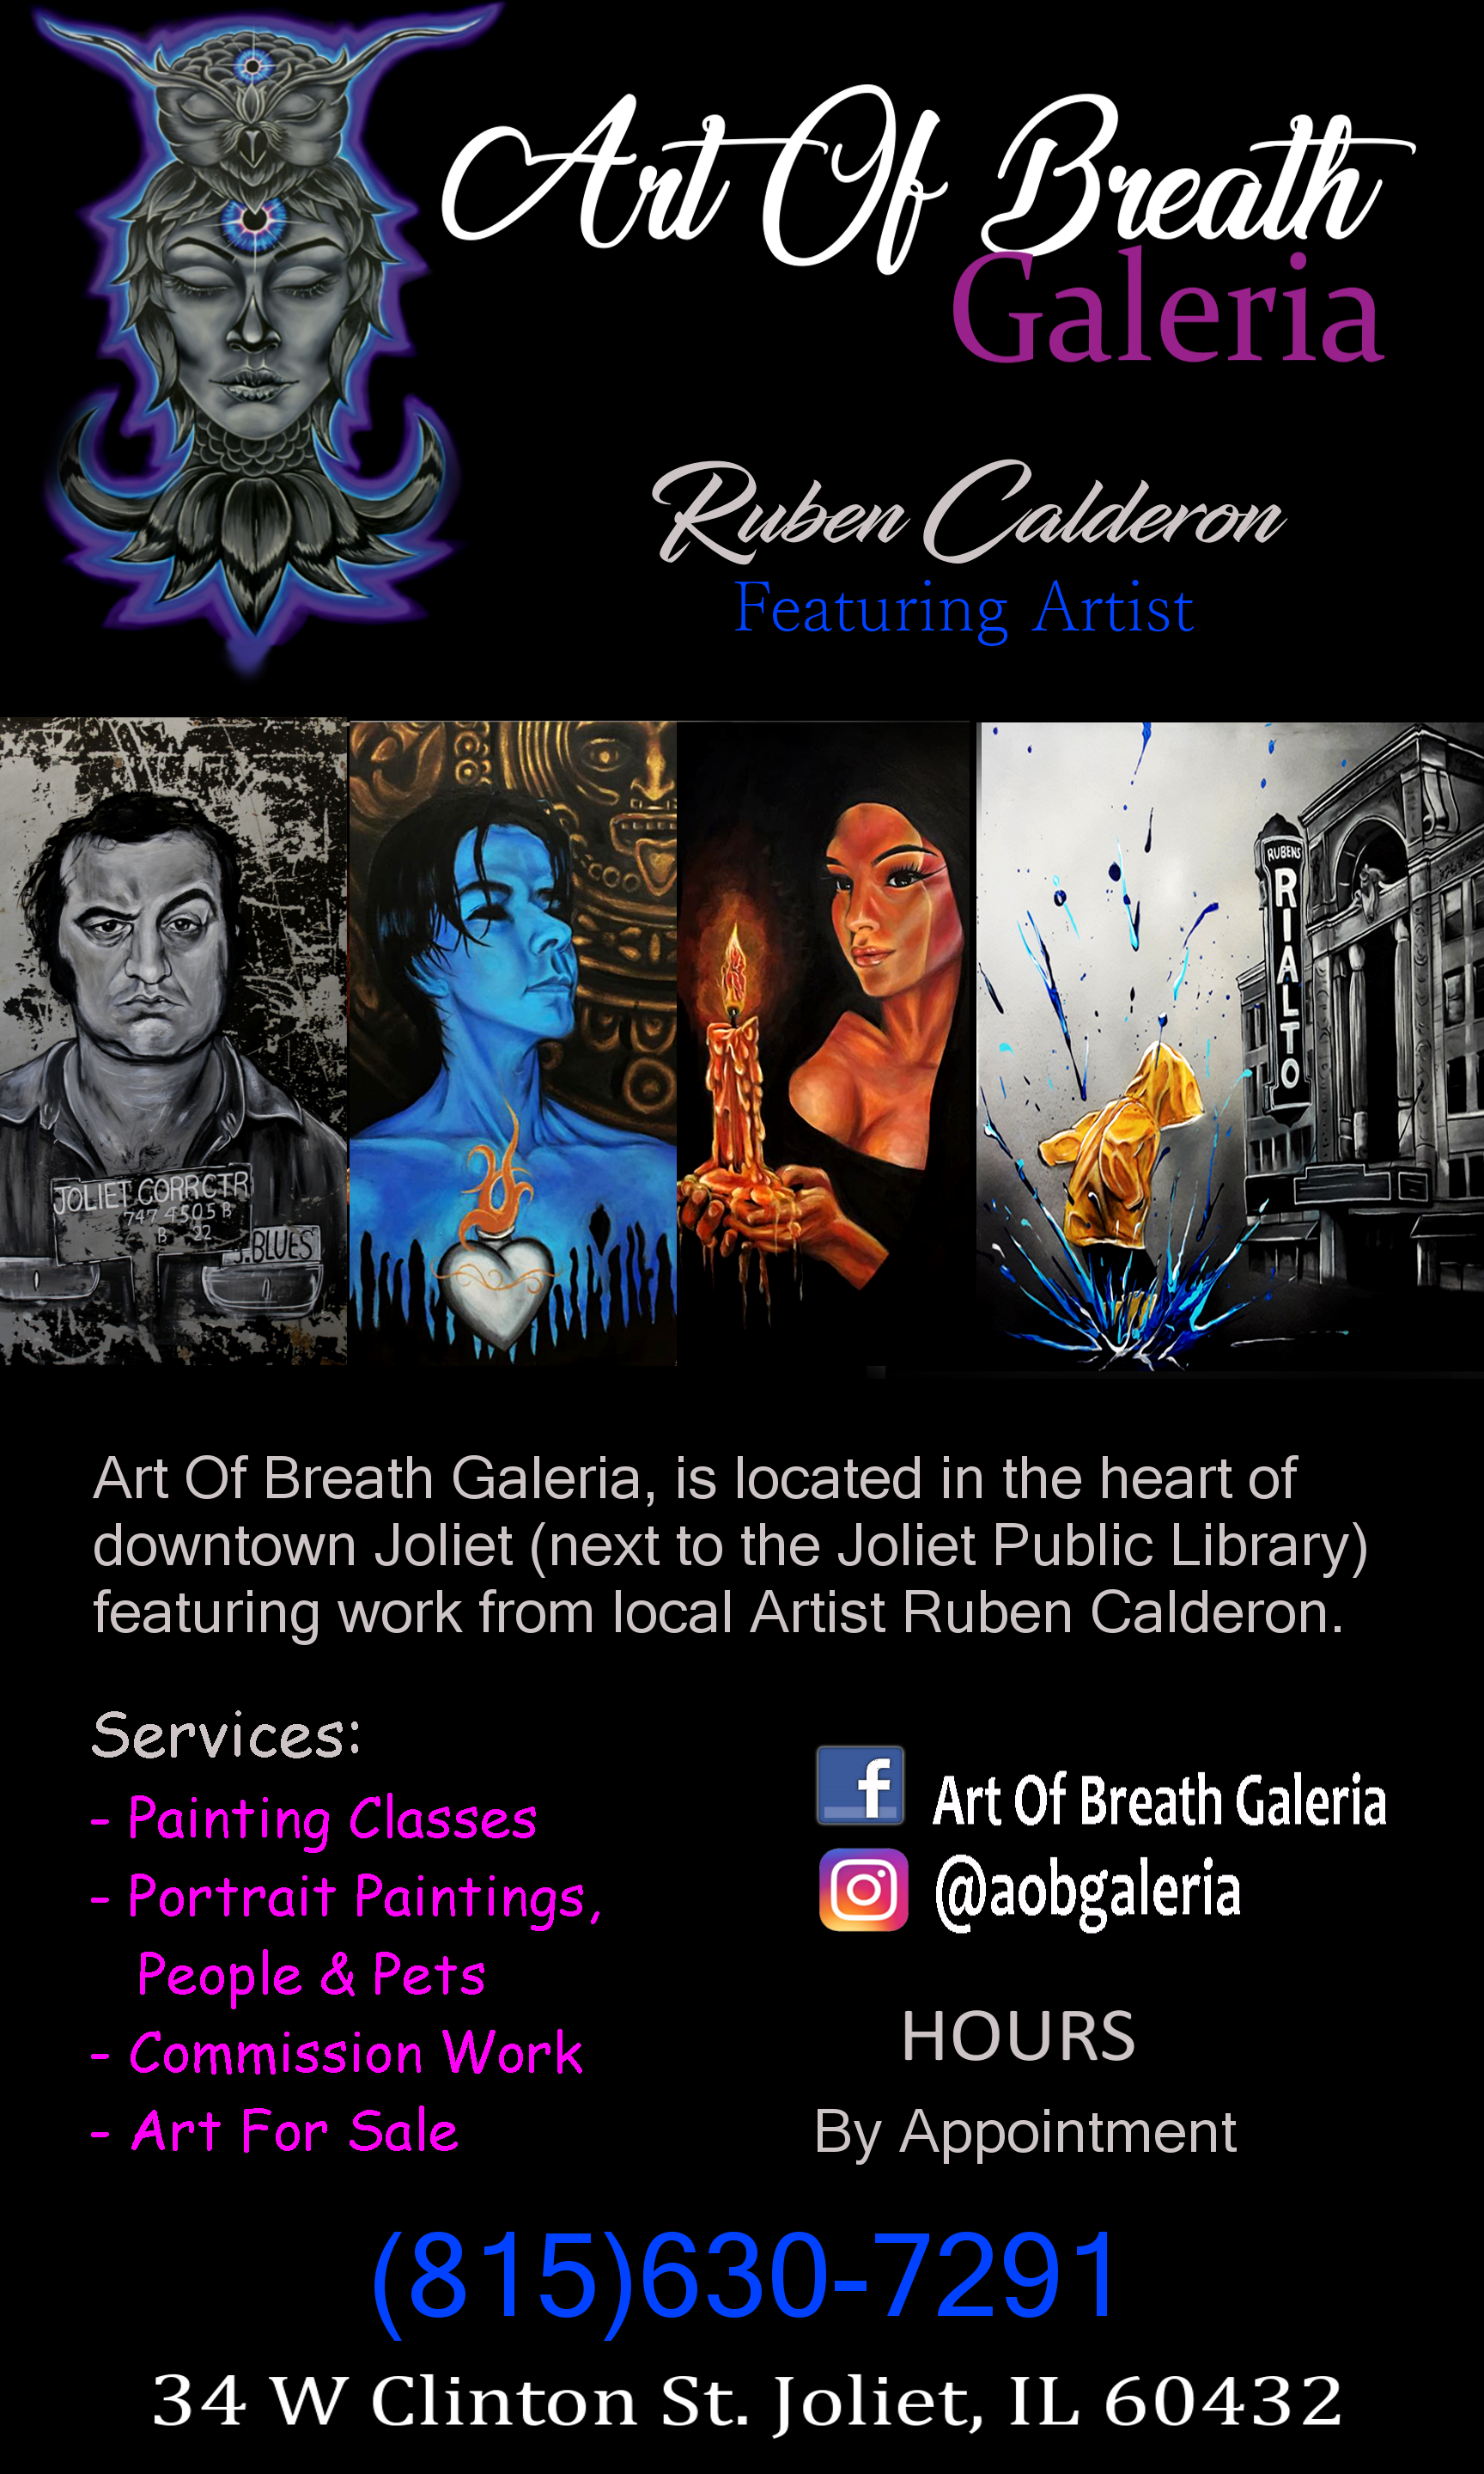 Art of Breath Galeria  in Joliet, IL.